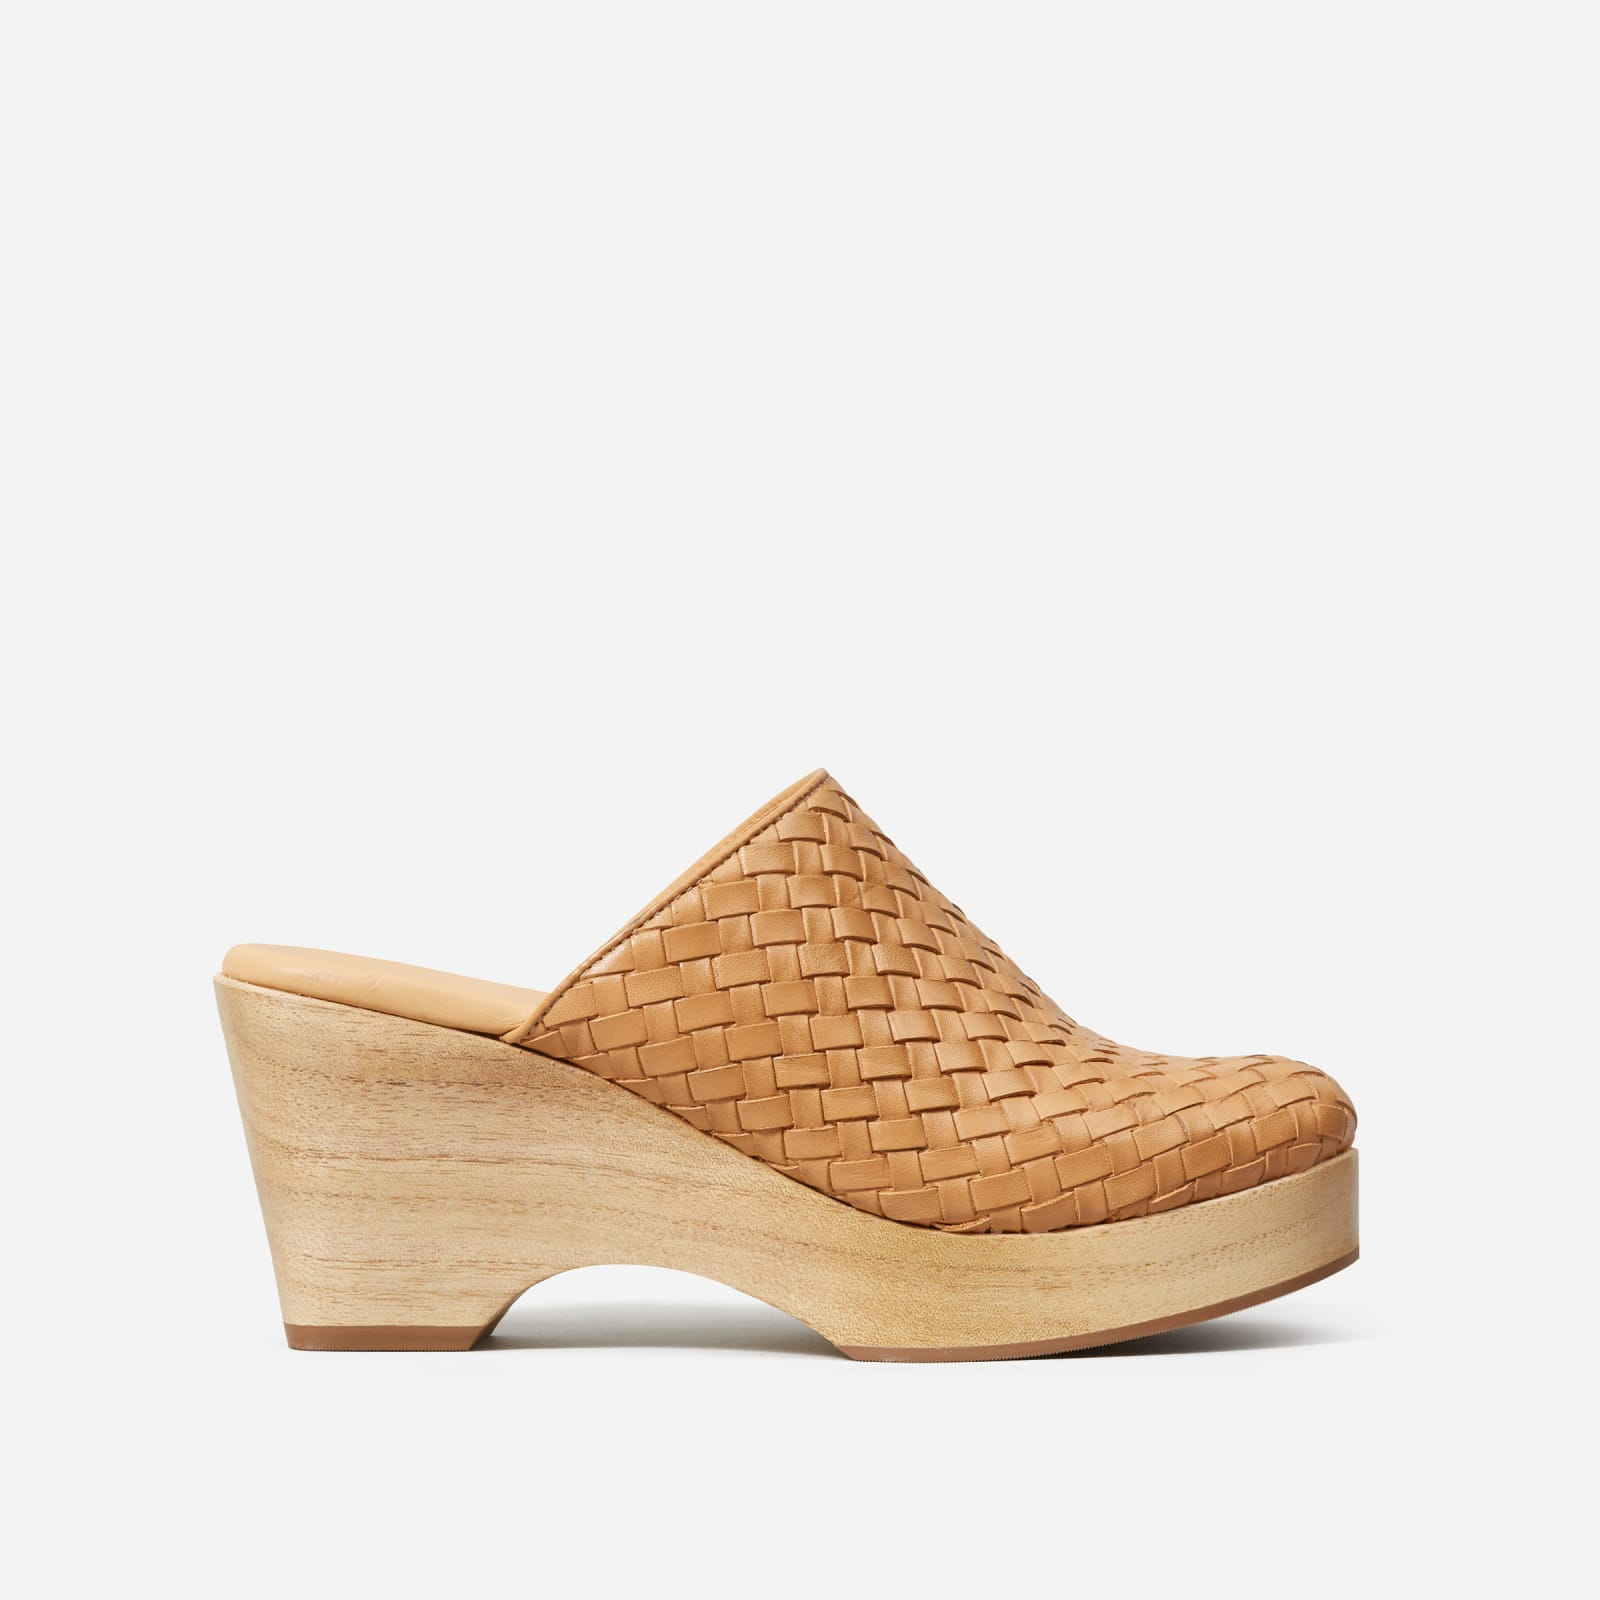 clog by everlane in tan woven, size 5